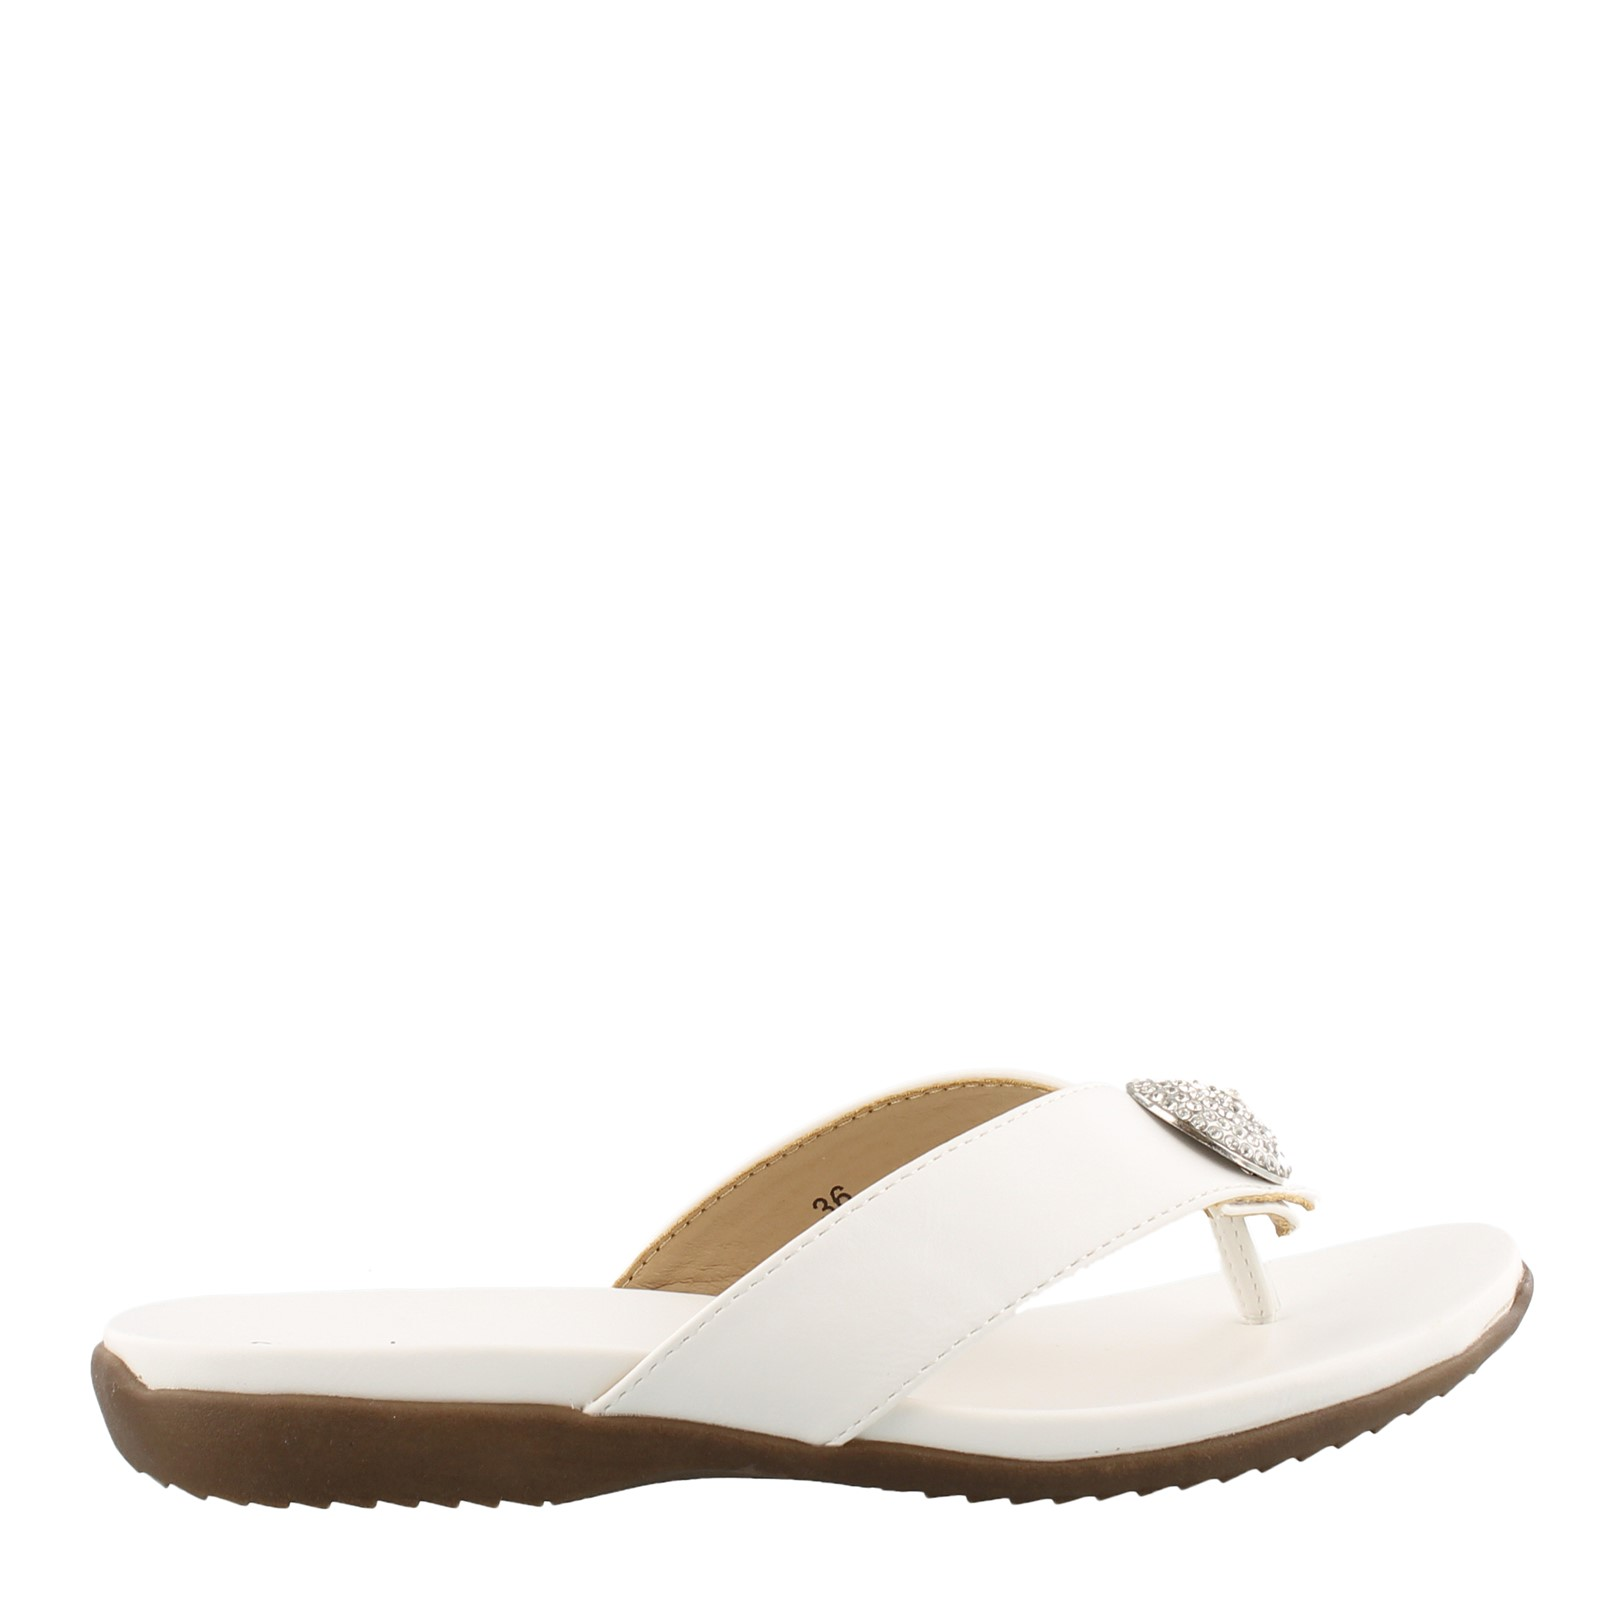 Women's Sean Alan, Jules Thong Sandals